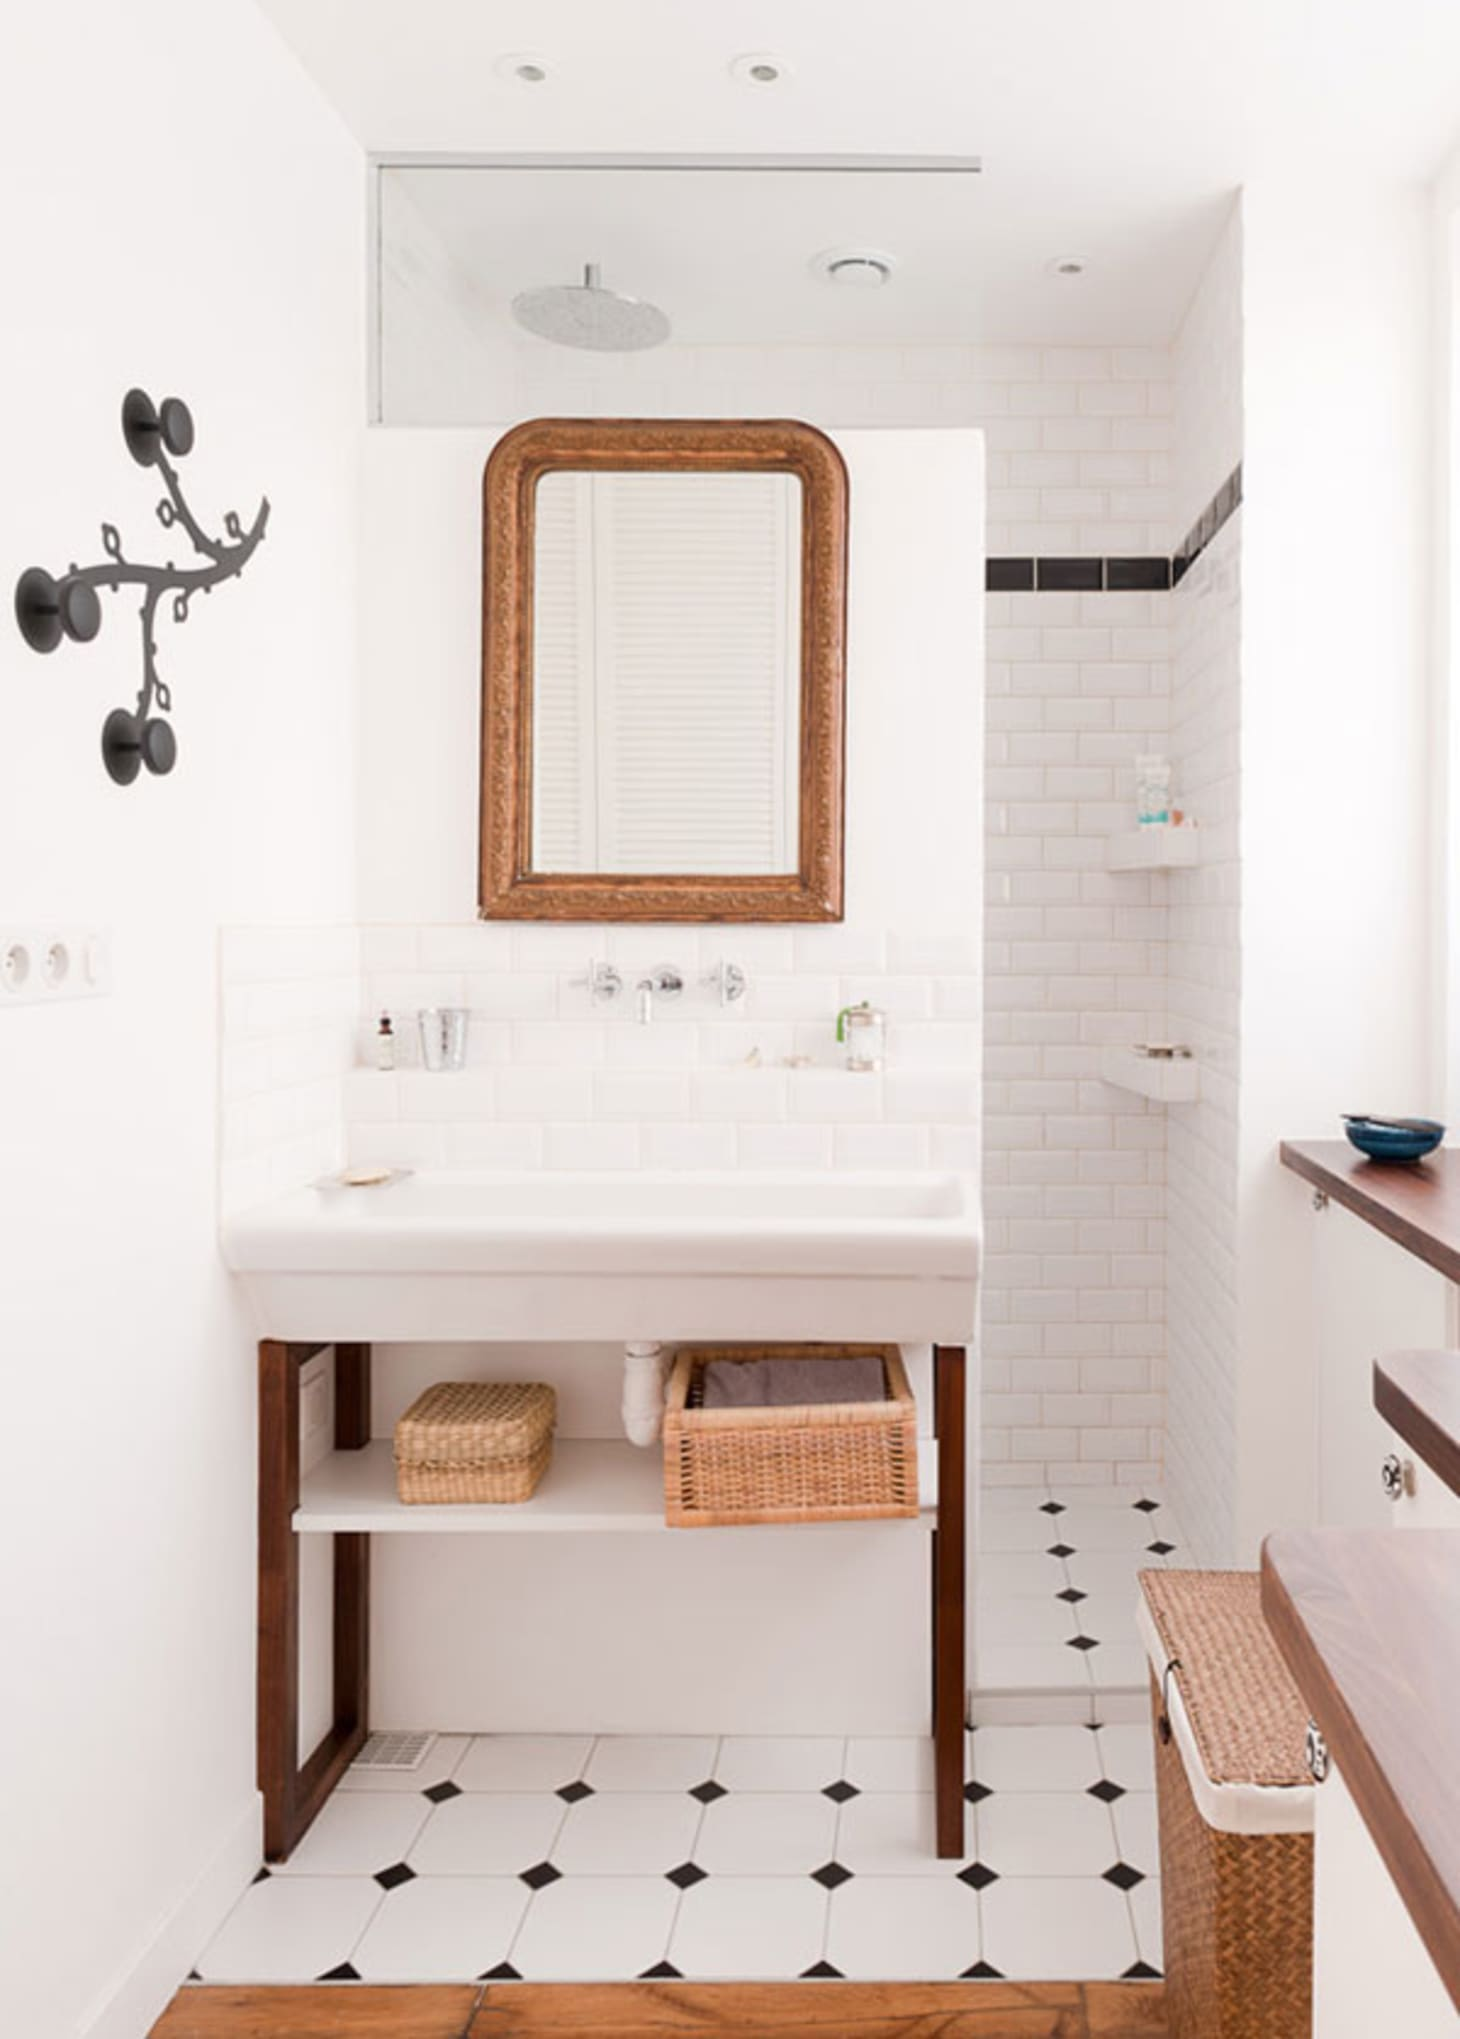 Stylish Remodeling Ideas for Small Bathrooms | Apartment ... on Small Apartment Bathroom  id=71319